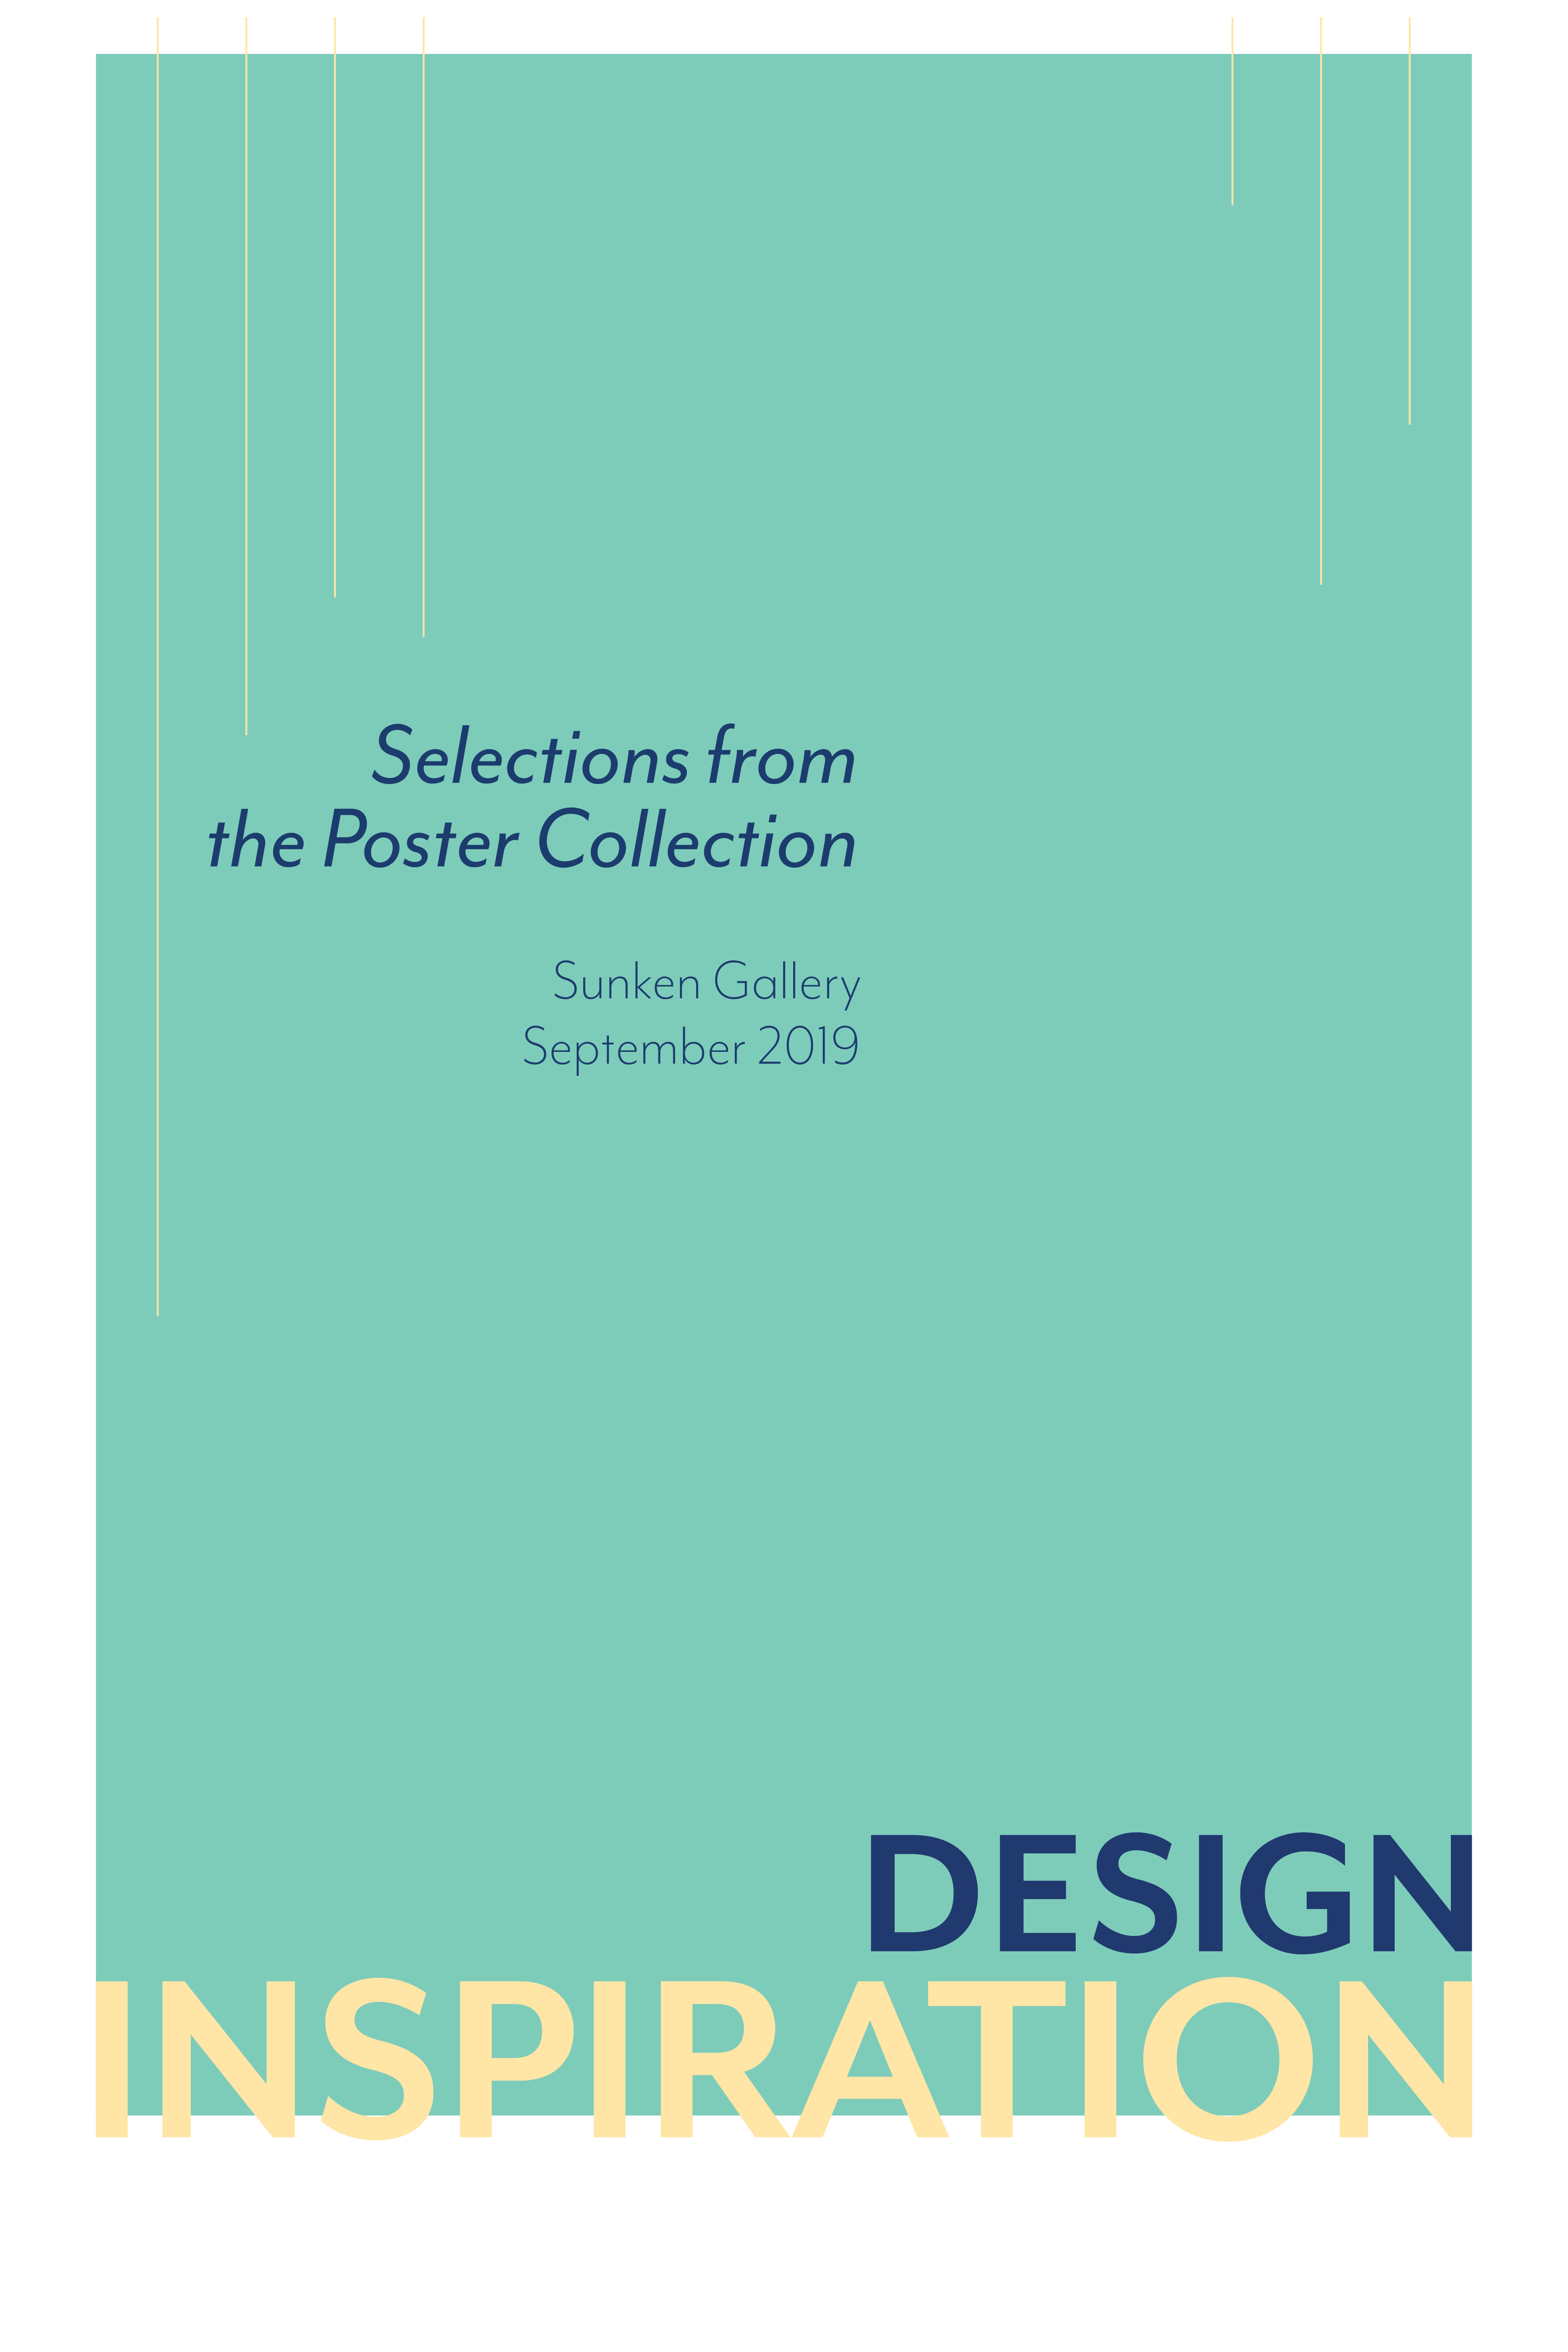 Design Inspiration: Selections from the Poster Collection. Sunken Gallery. September 2019.